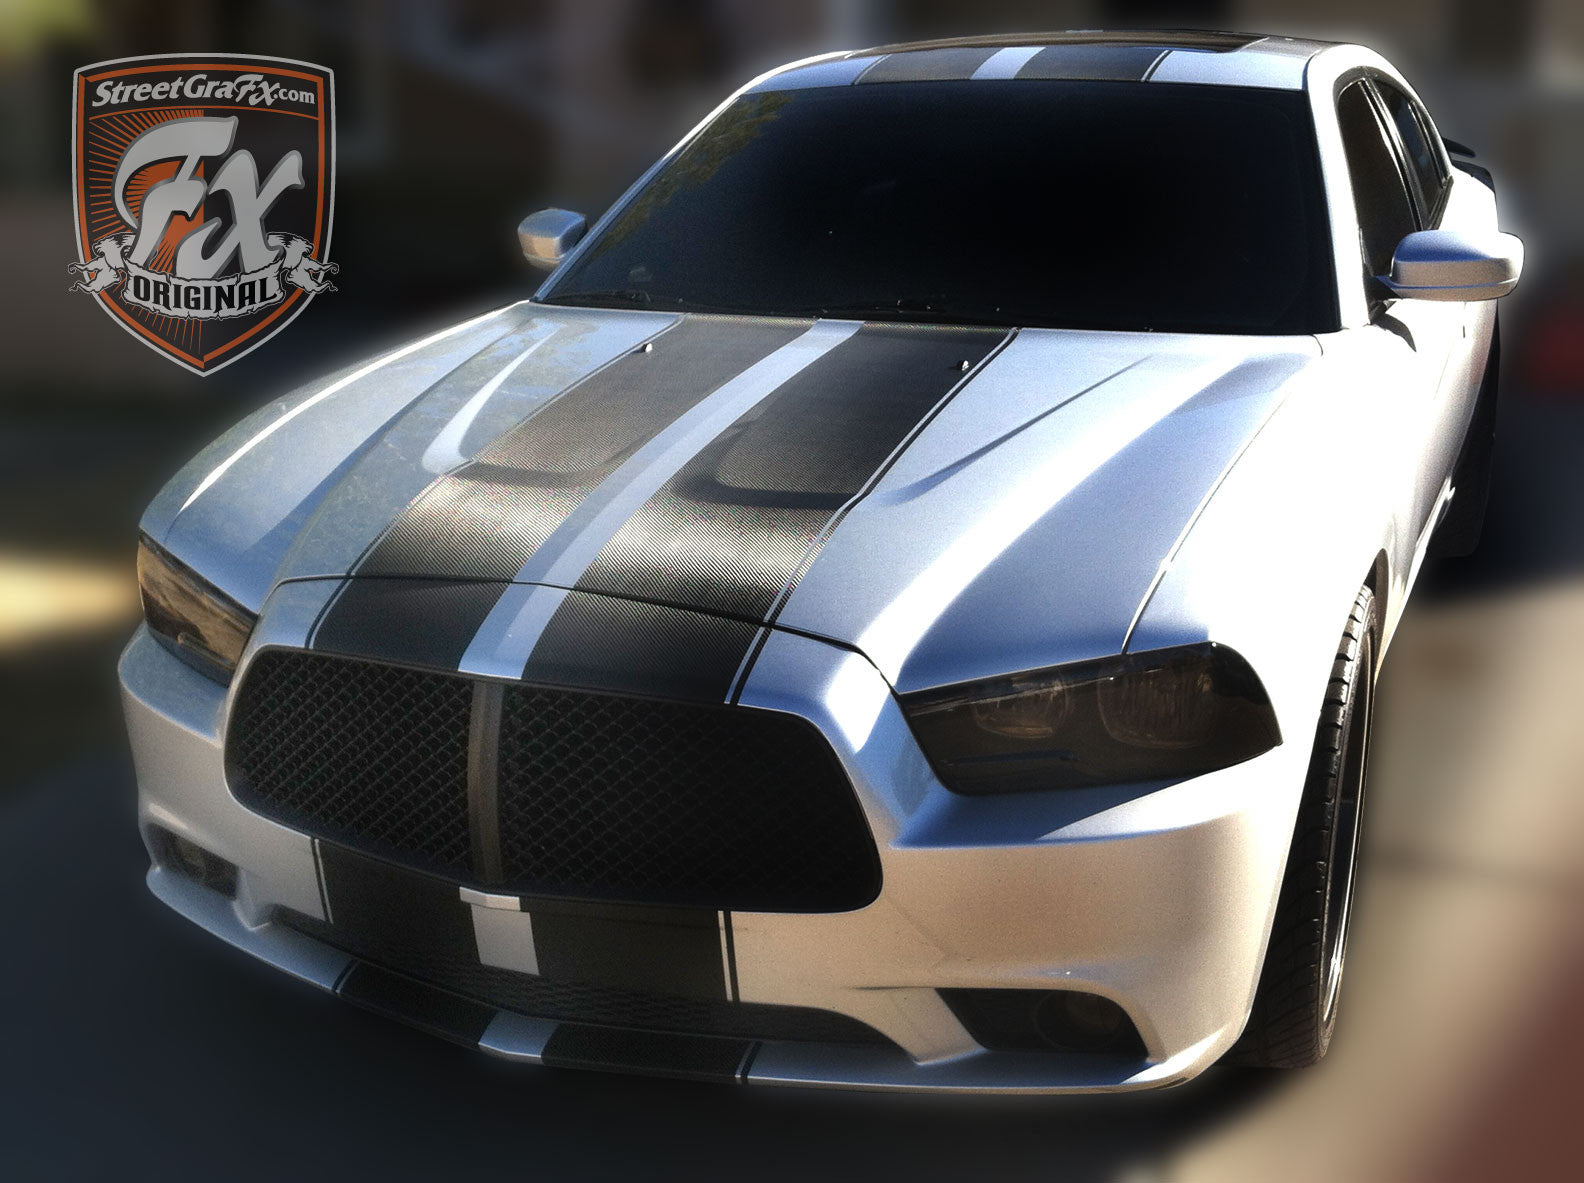 2014 Dodge Challenger For Sale >> Dodge Charger Stripes, Racing Stripes & R/T Graphic kit ...